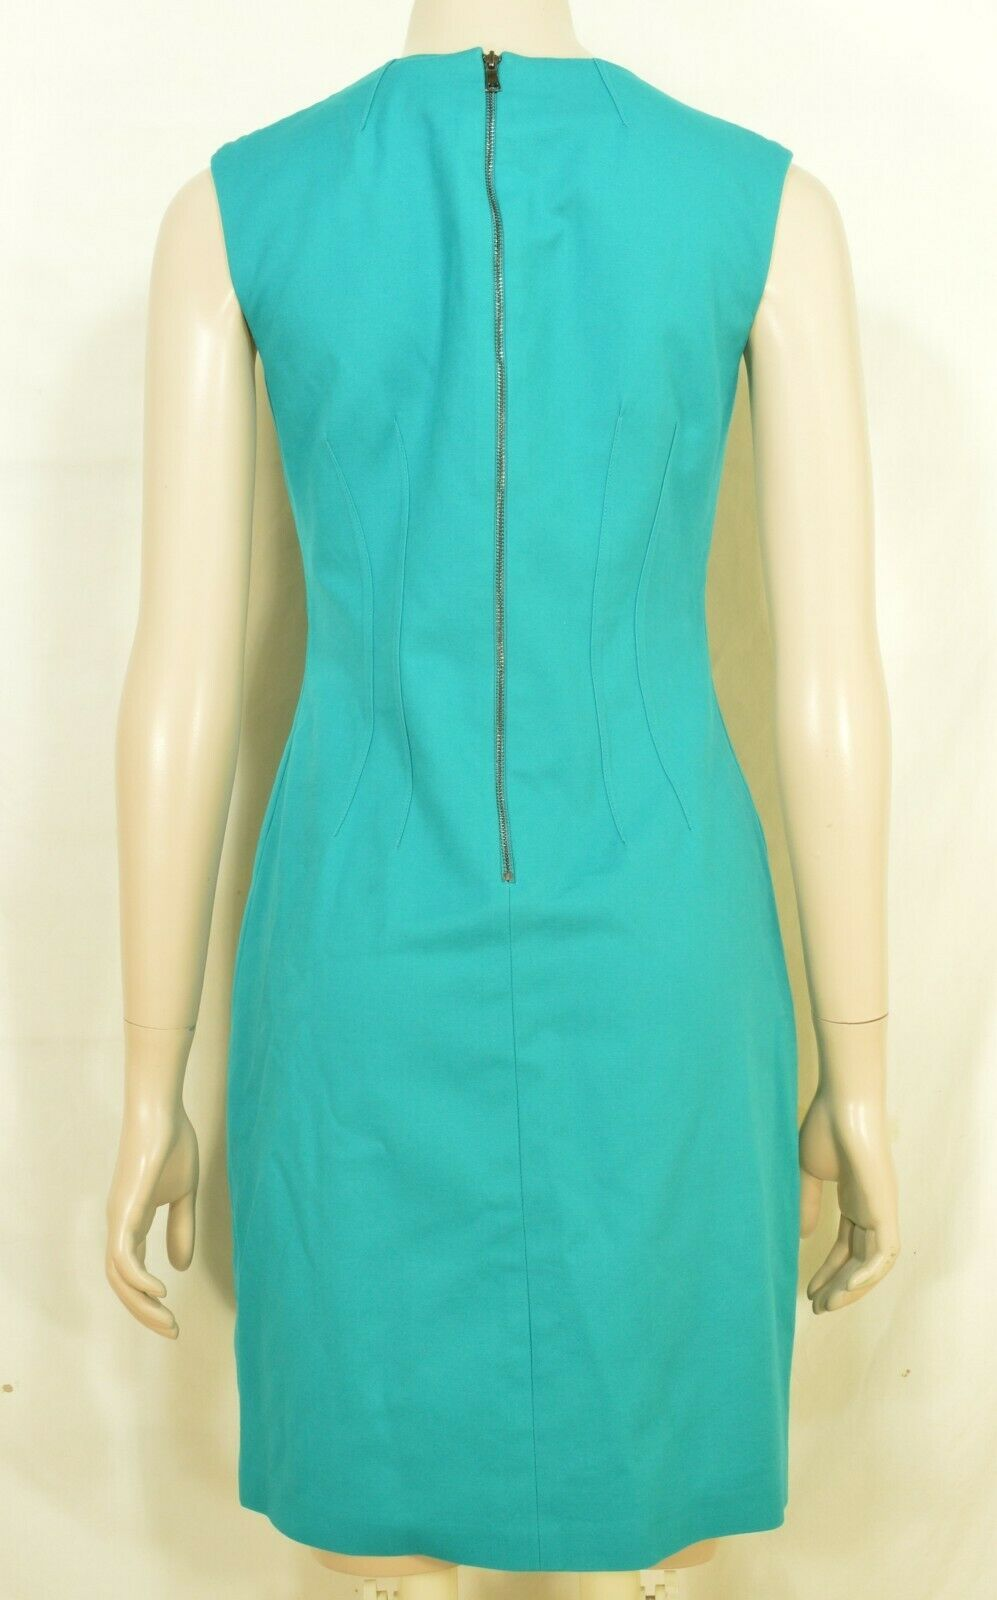 Elie Tahari dress SZ 2 LOT of 2  1 turquoise 1 floral sheath career chic lined image 7